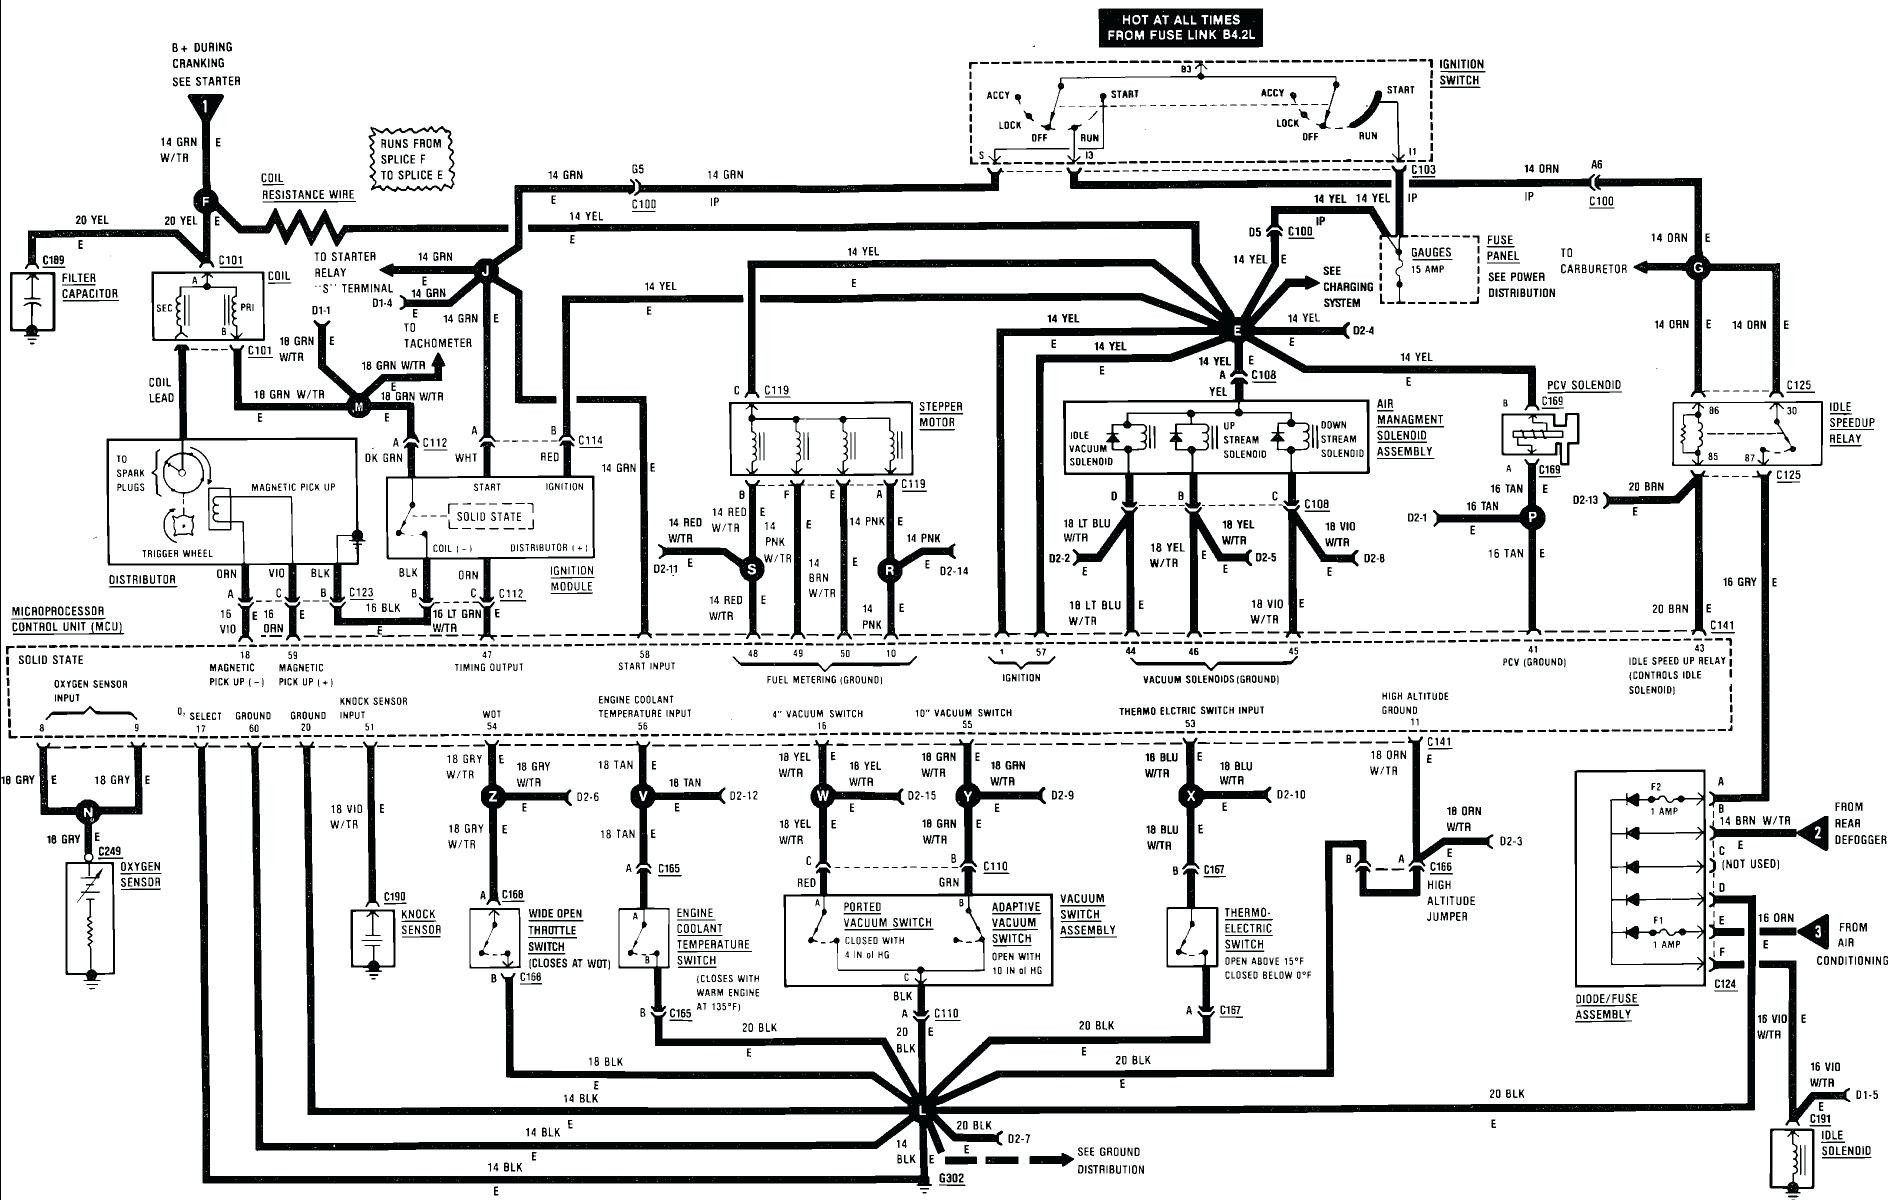 Jeep Wrangler Engine Diagram 1998 Jeep Grand Cherokee Stereo Wiring Harness Diagram Fresh Of Jeep Wrangler Engine Diagram